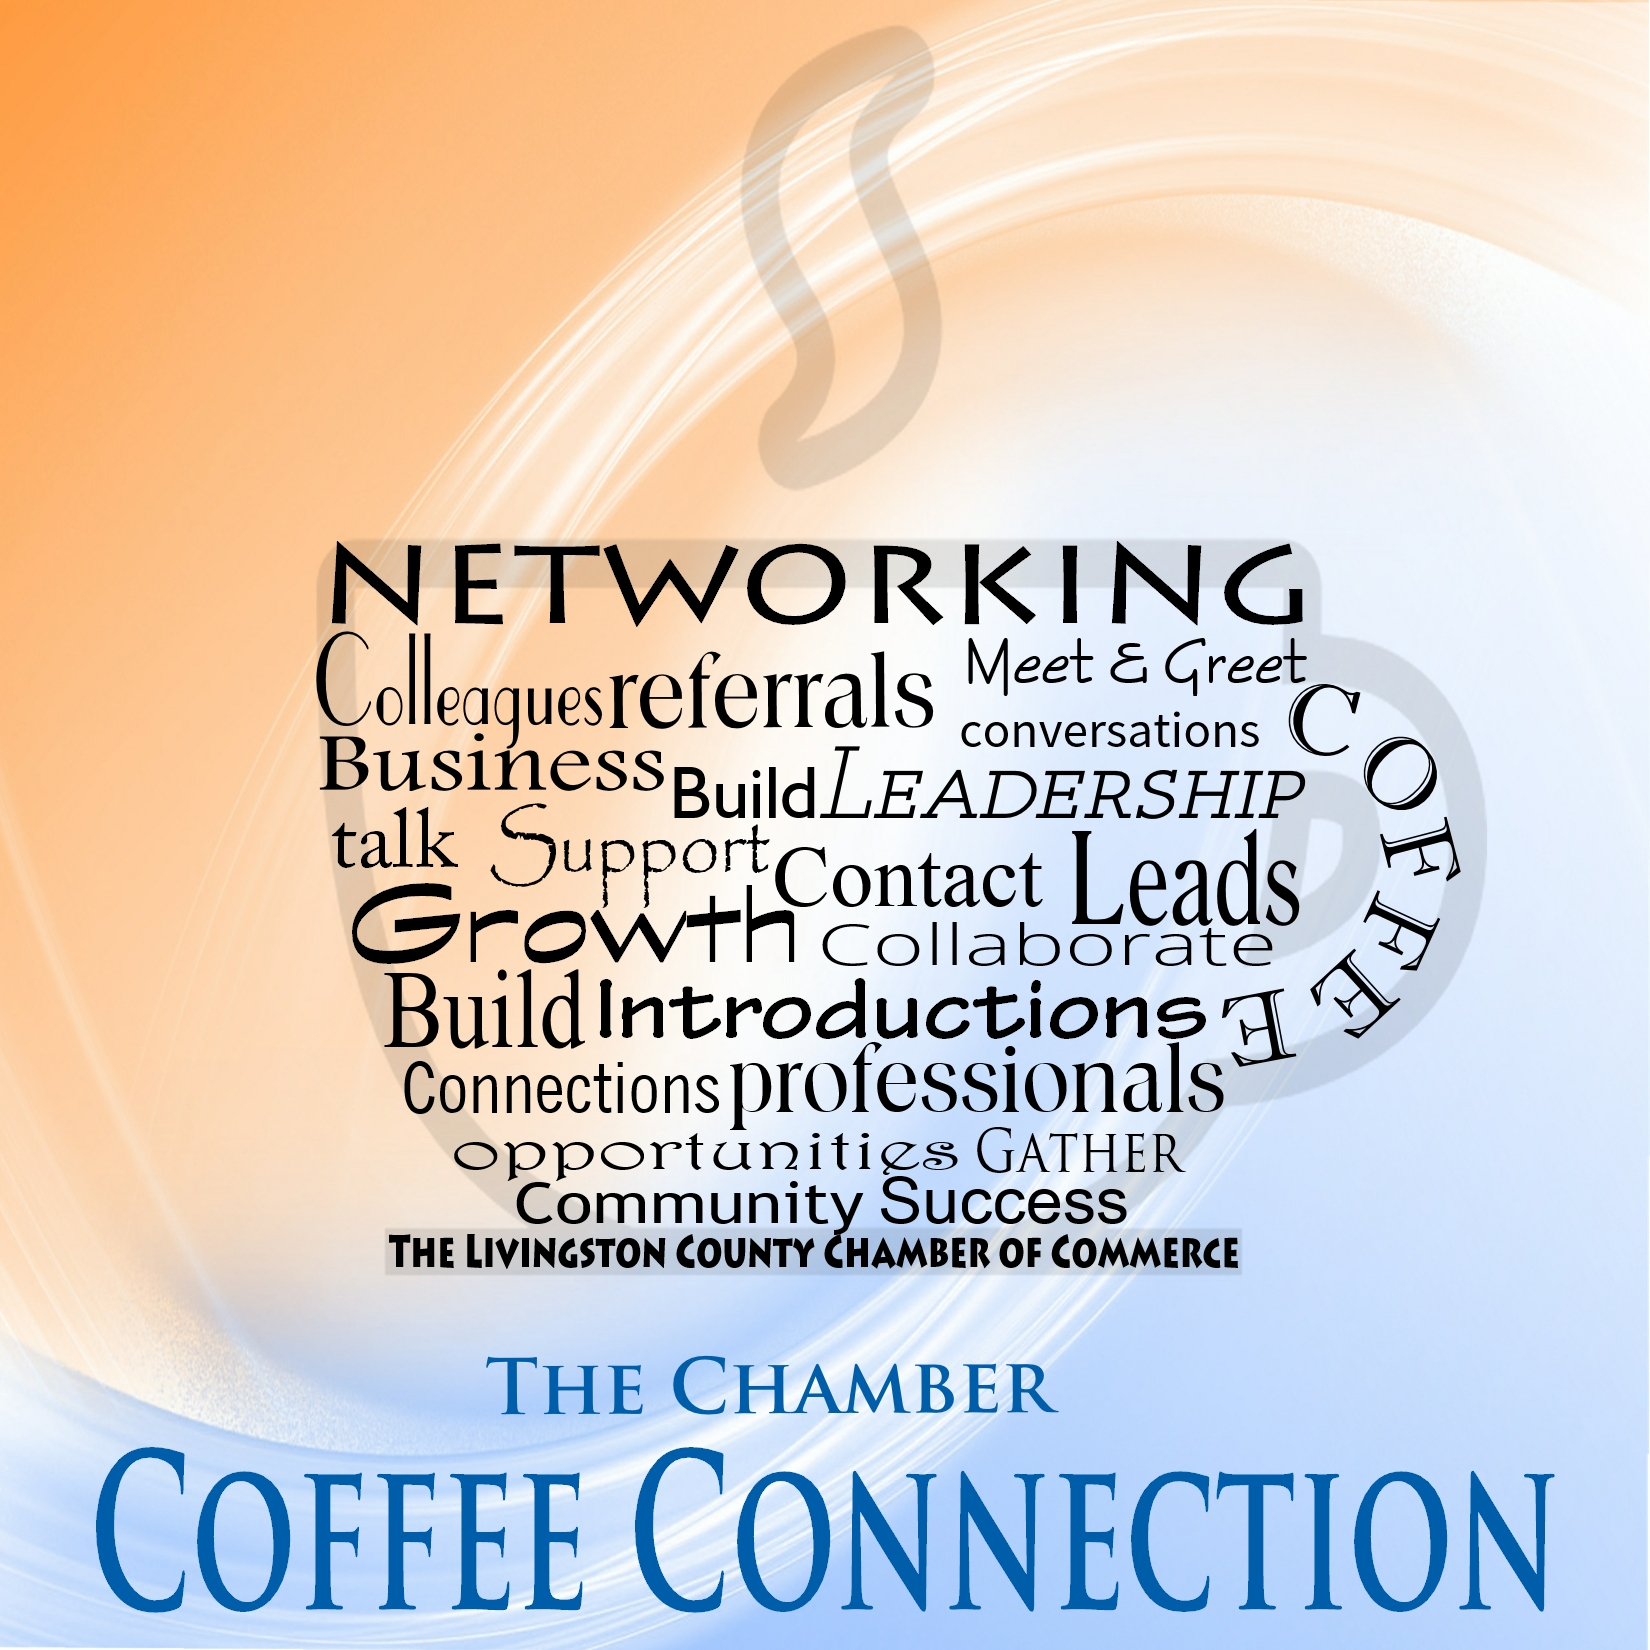 Chamber Coffee Connection, Networking, Livingston County Chamber of Commerce